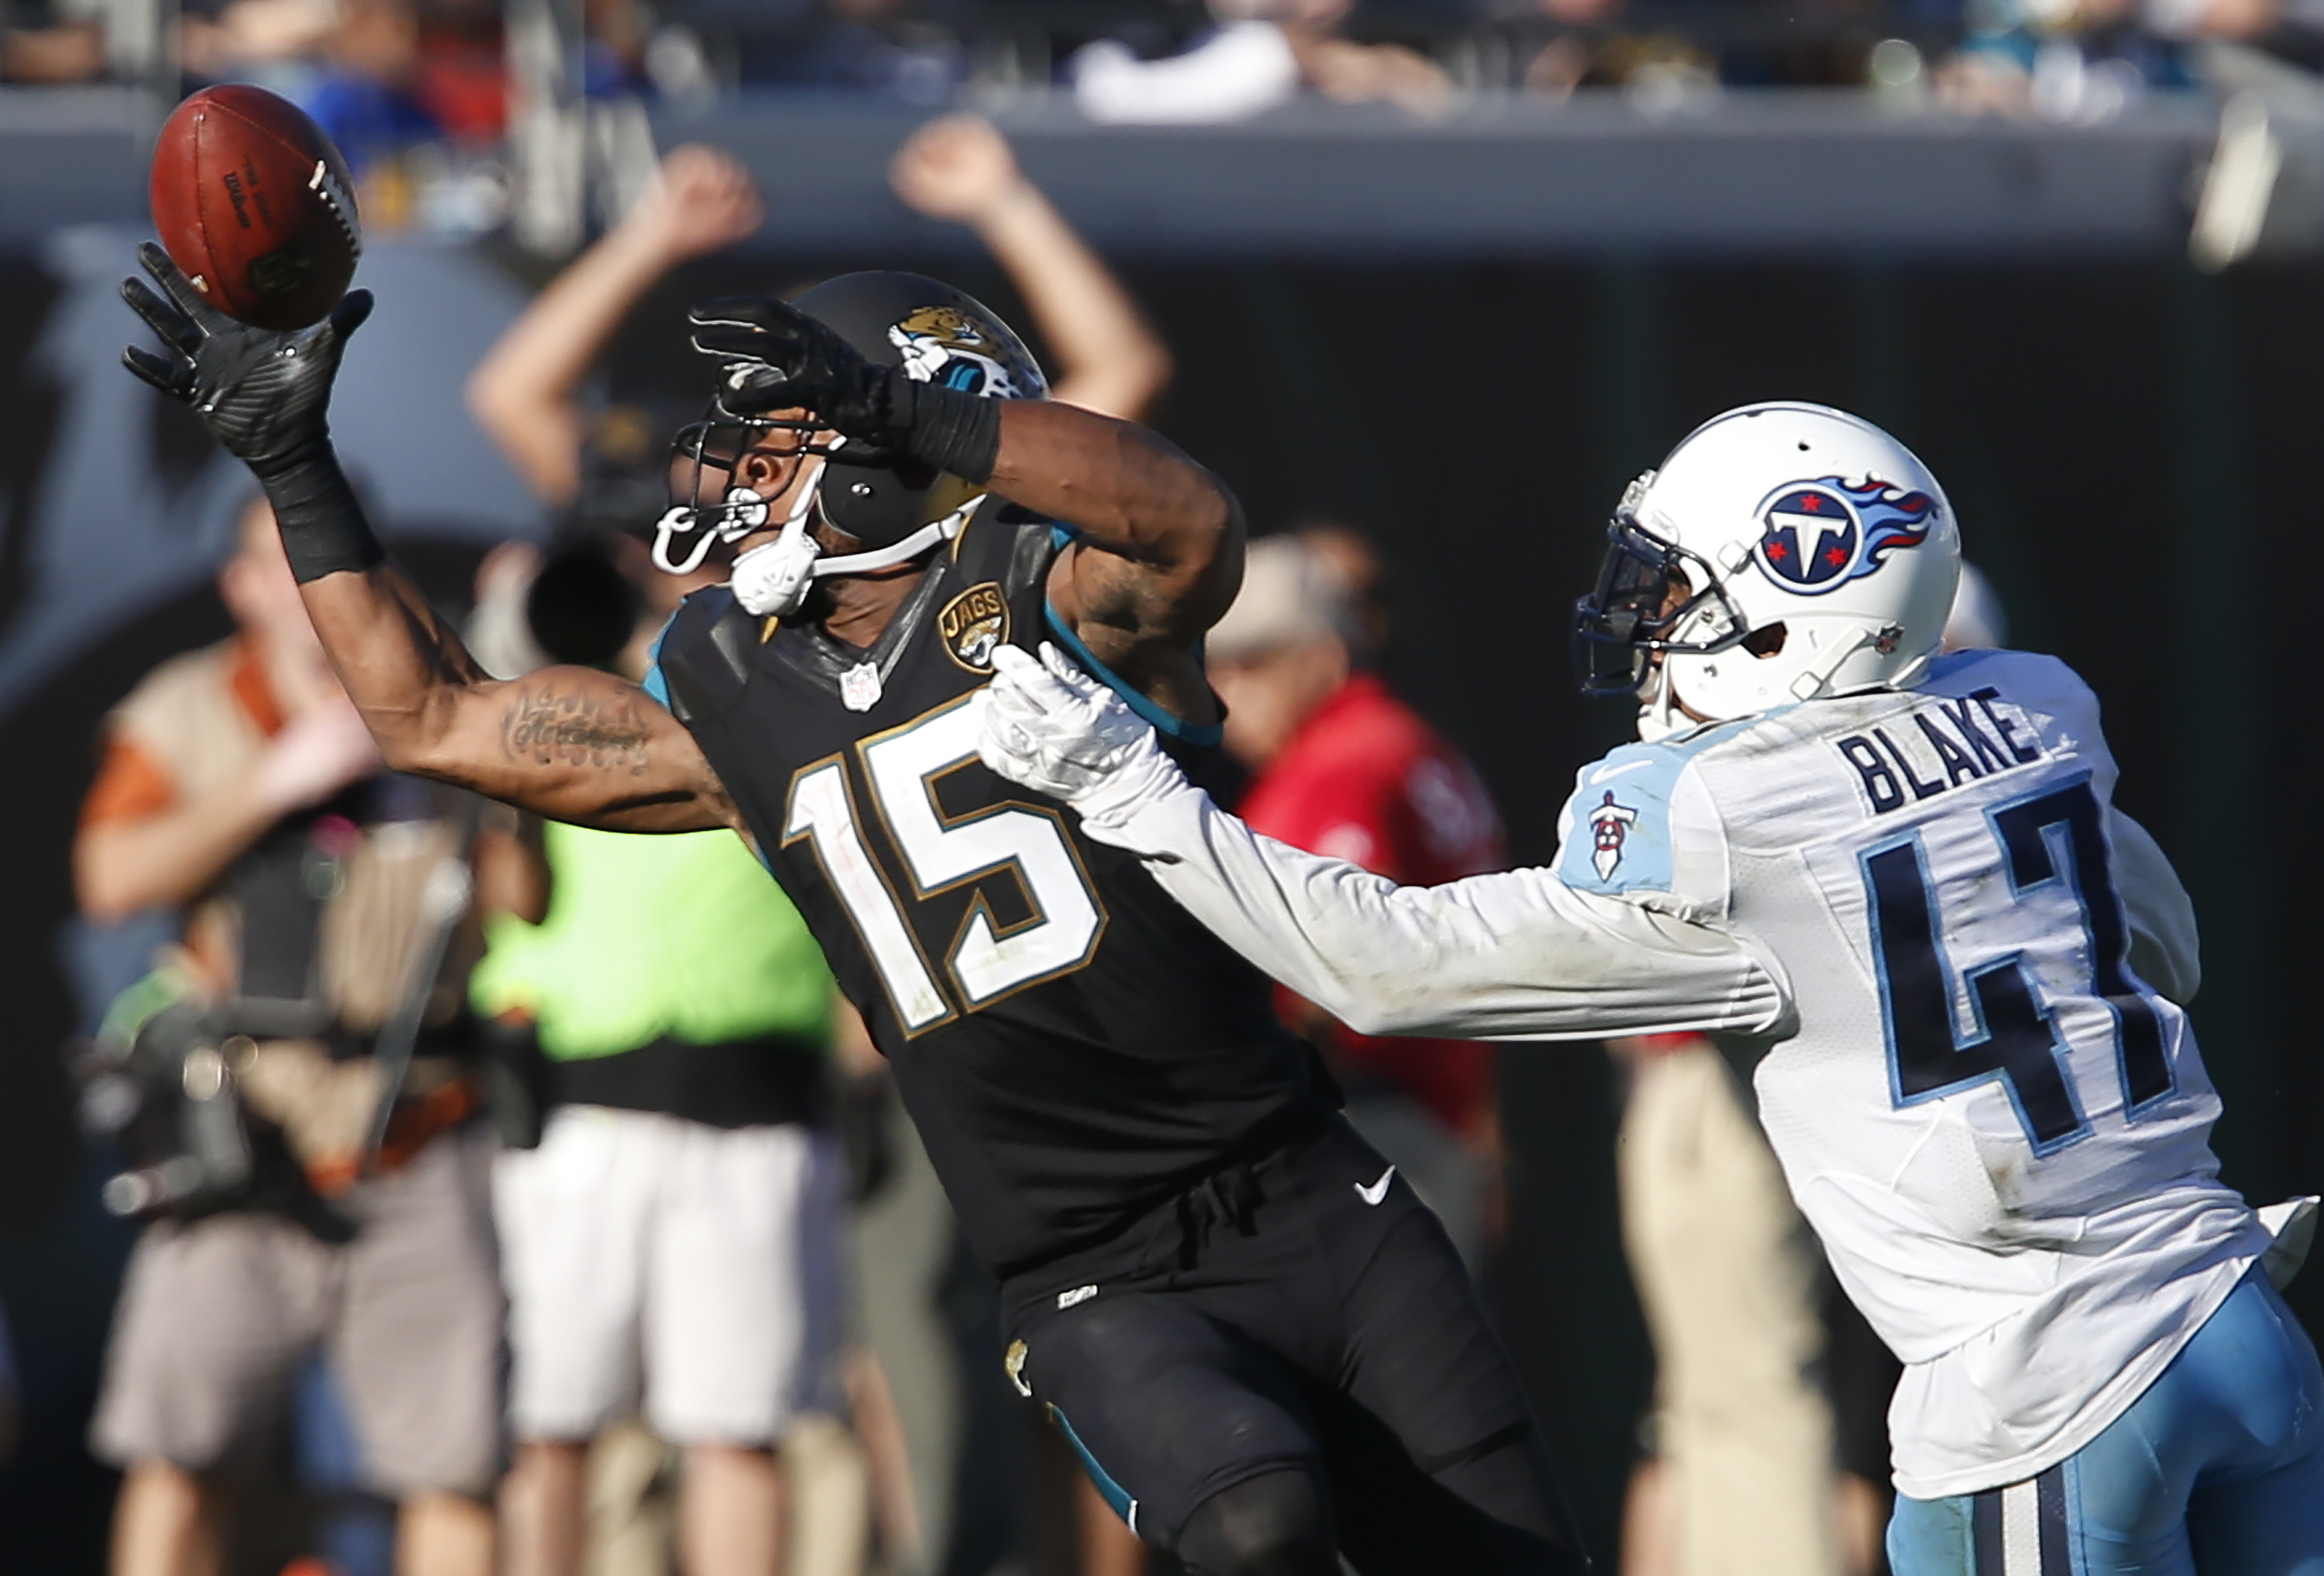 Dec 24, 2016; Jacksonville, FL, USA; Jacksonville Jaguars wide receiver Allen Robinson (15) makes a one handed catch as Tennessee Titans defensive back Valentino Blake (47) defends during the second half of an NFL football game at EverBank Field.The Jaguars won 38-17. Mandatory Credit: Reinhold Matay-USA TODAY Sports